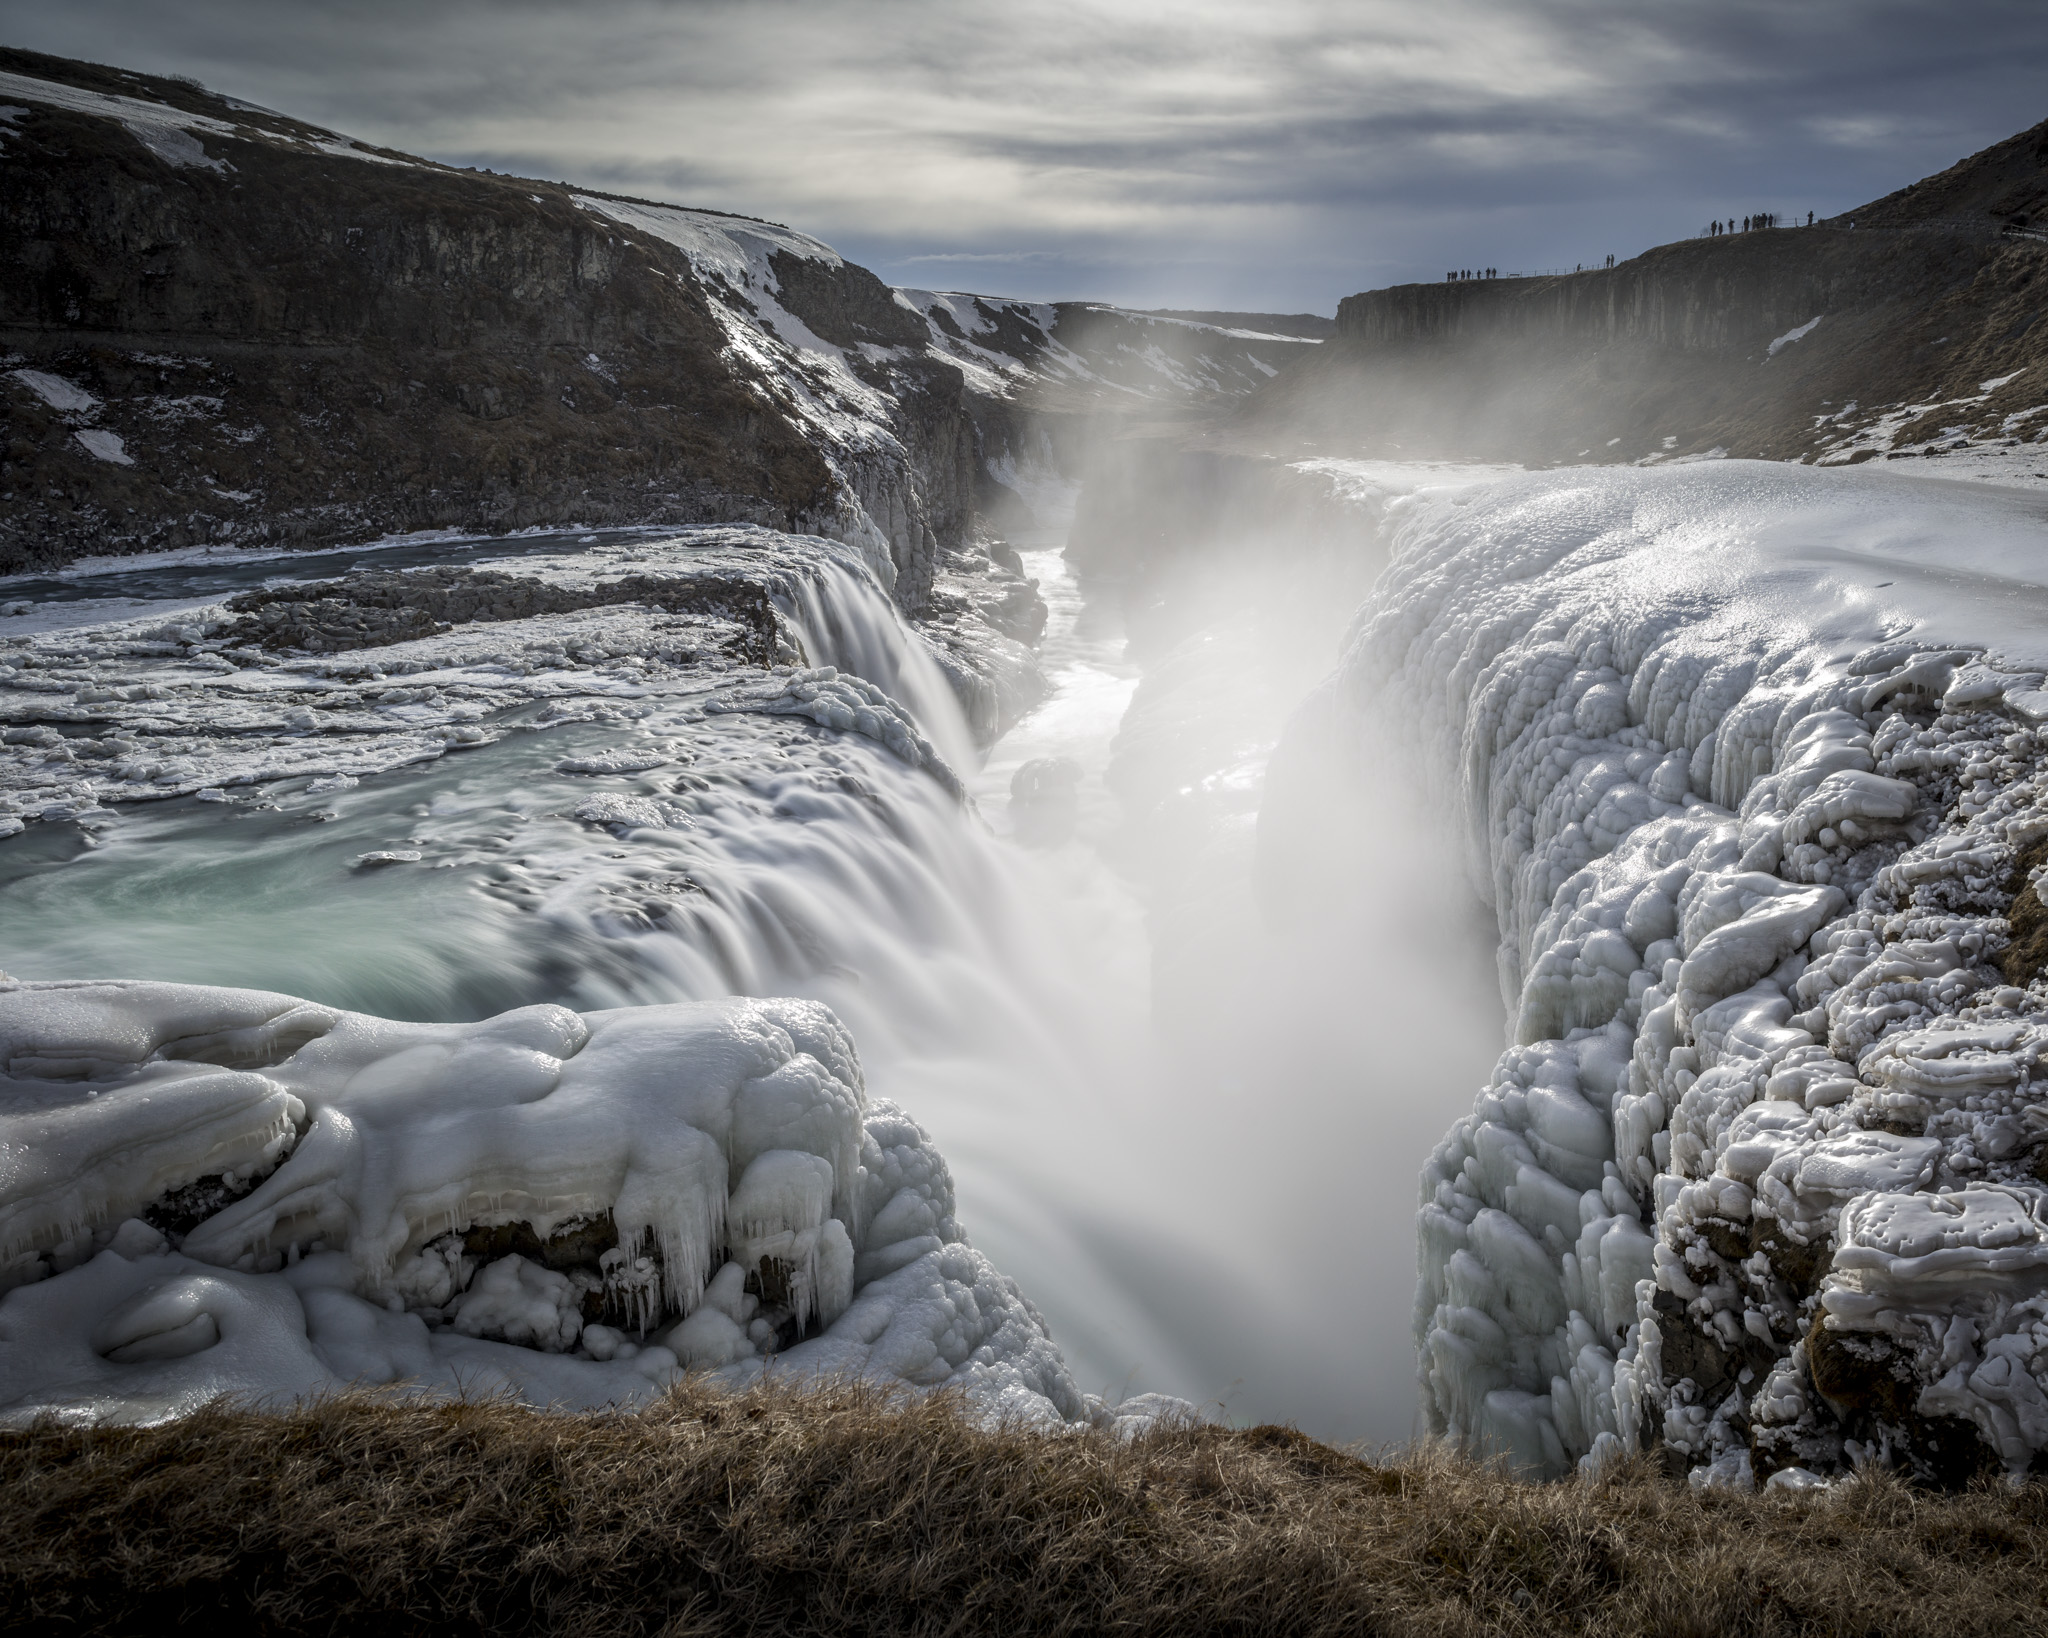 Gullfoss waterfall clad in ice.